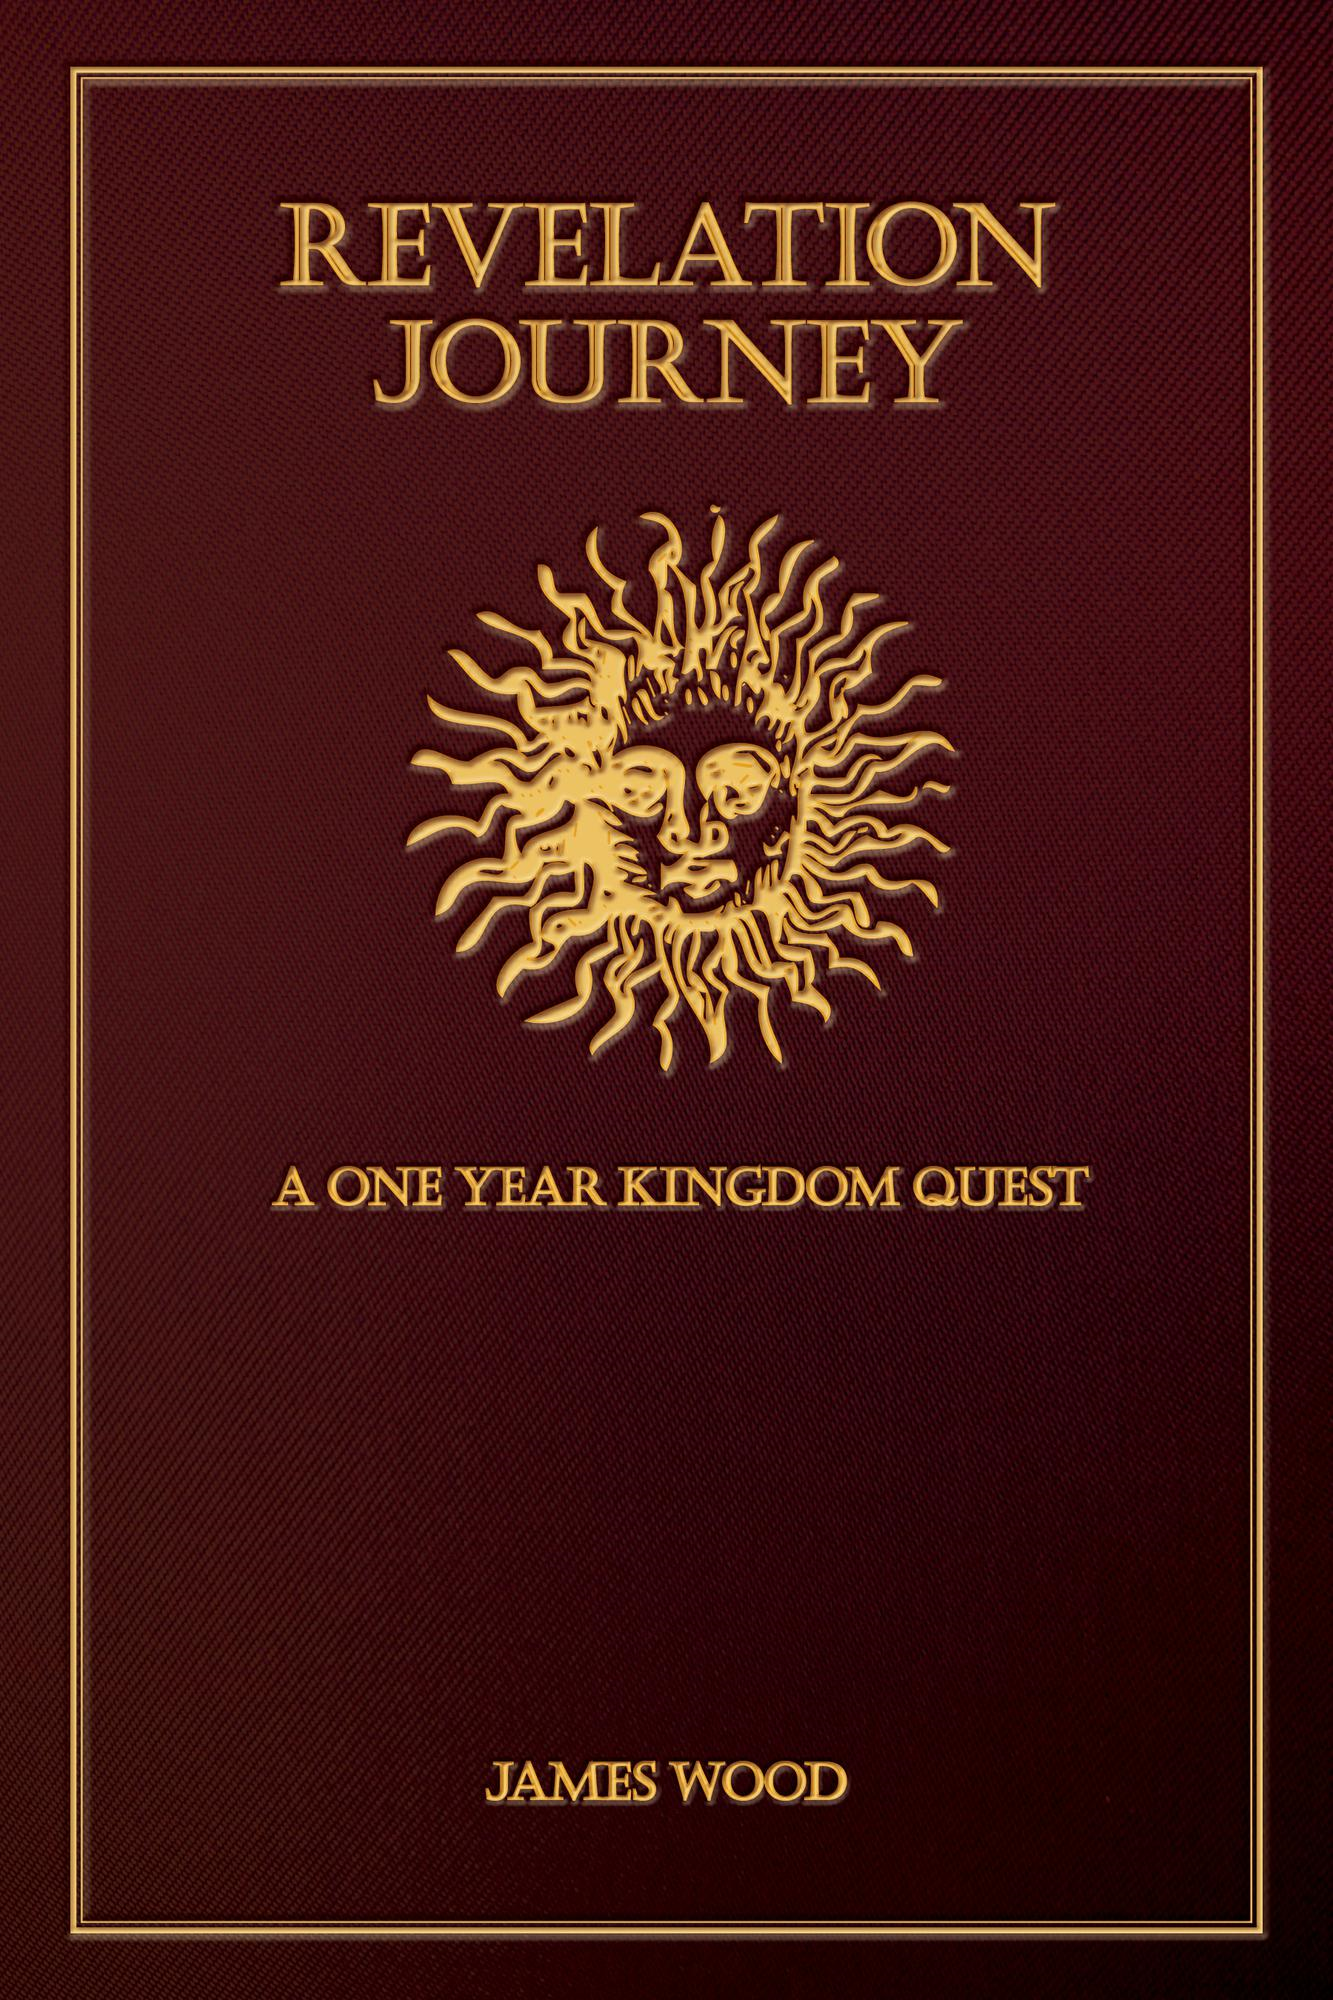 REVELATION JOURNEY: A ONE YEAR KINGDOM QUEST